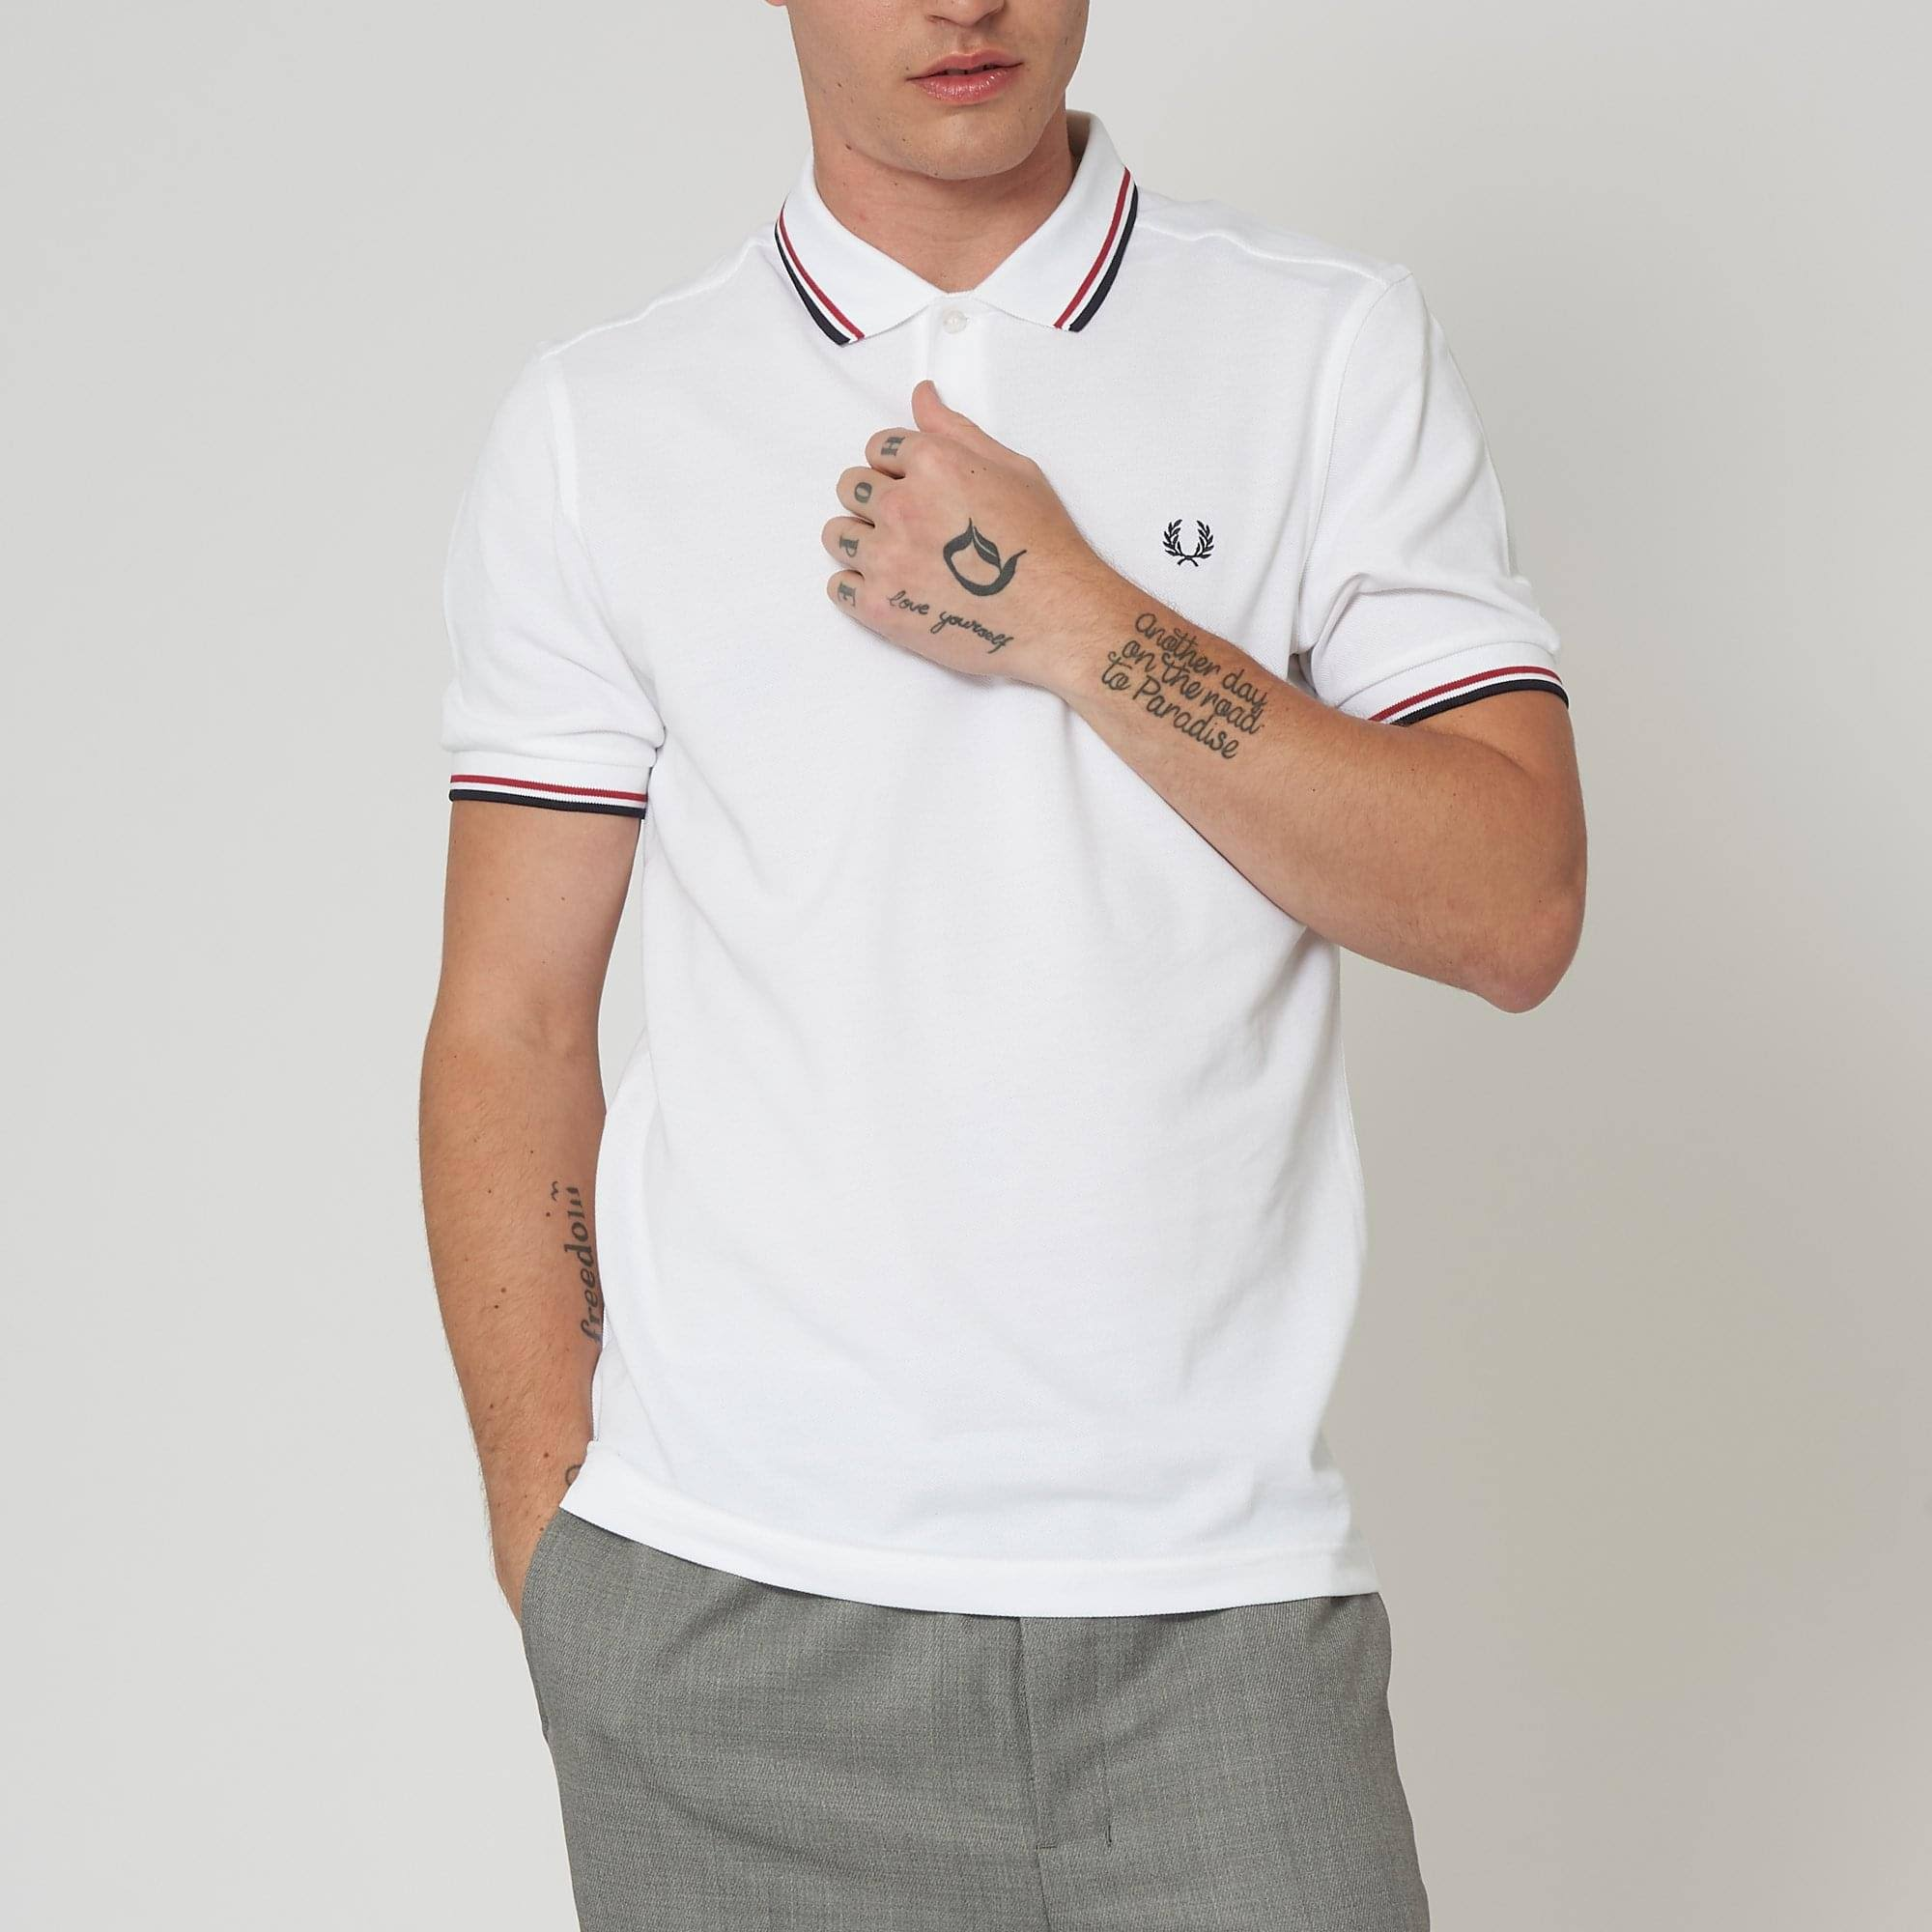 Wit Fred Tipped T Twin Perry Polo shirt Yy6f7bgv